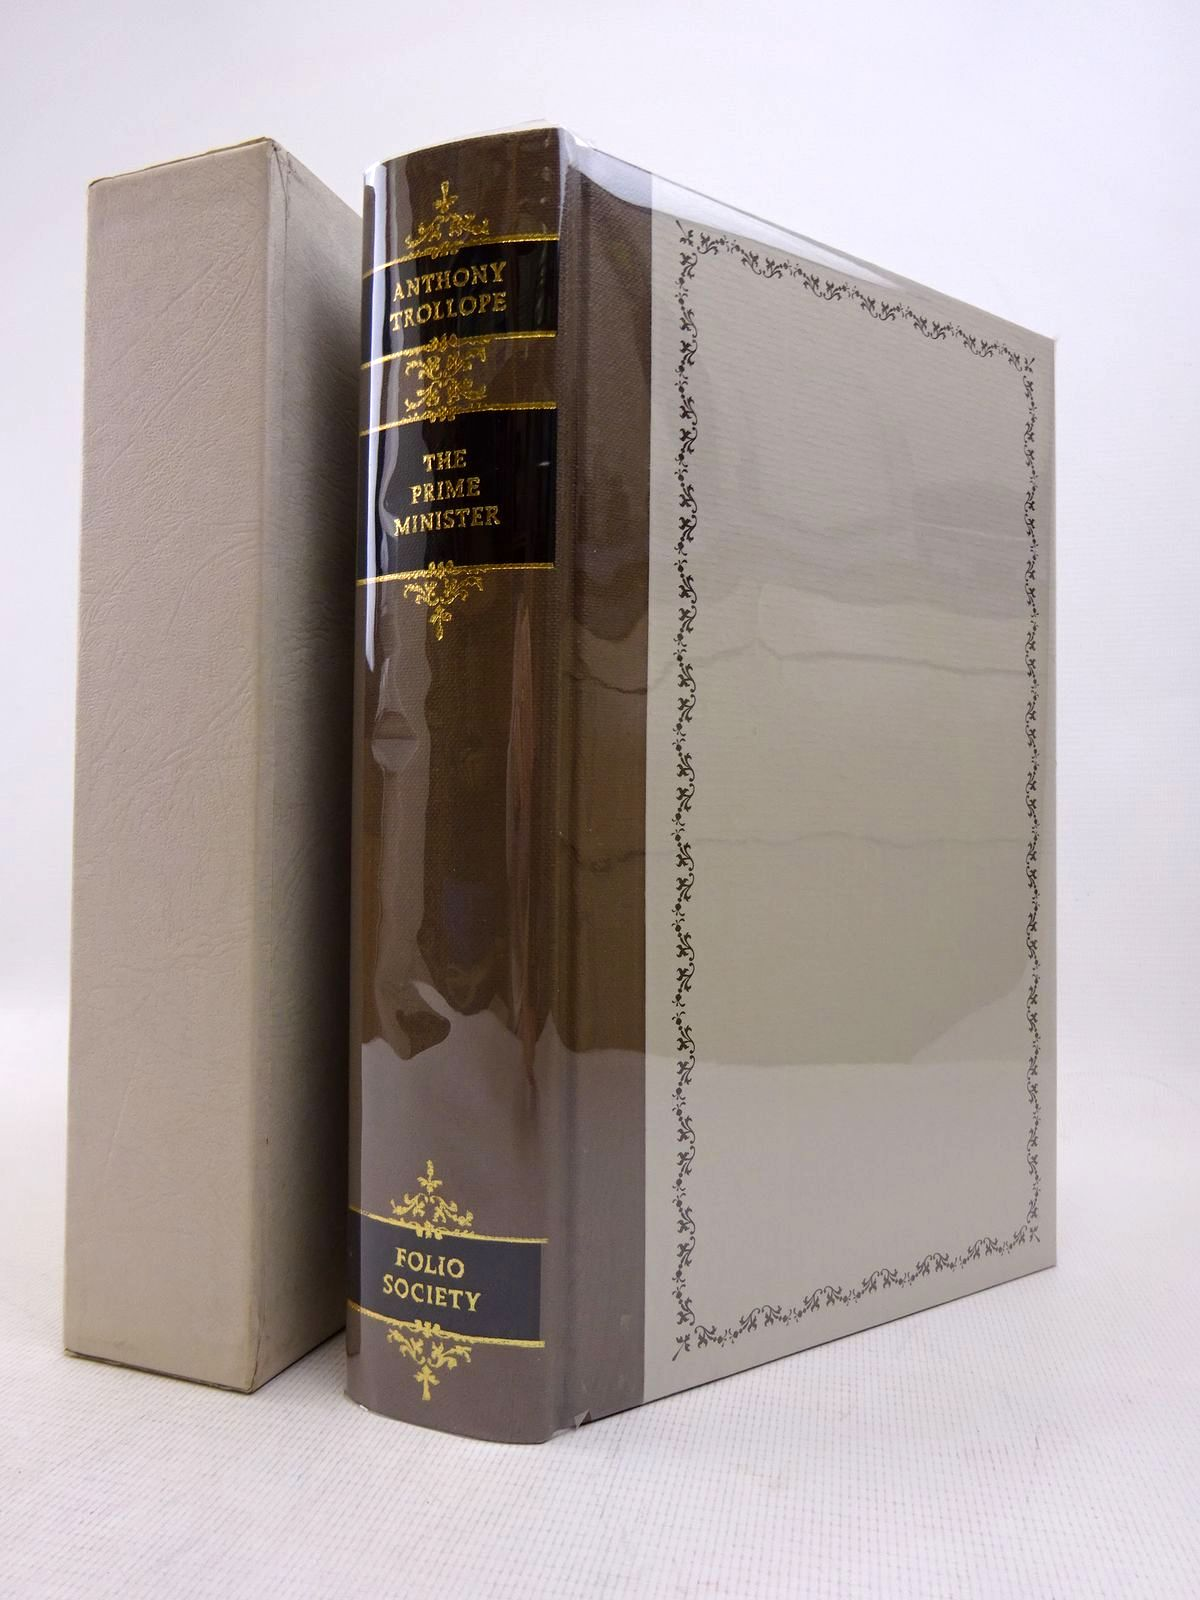 Photo of THE PRIME MINISTER written by Trollope, Anthony illustrated by Thomas, Llewellyn published by Folio Society (STOCK CODE: 1816981)  for sale by Stella & Rose's Books